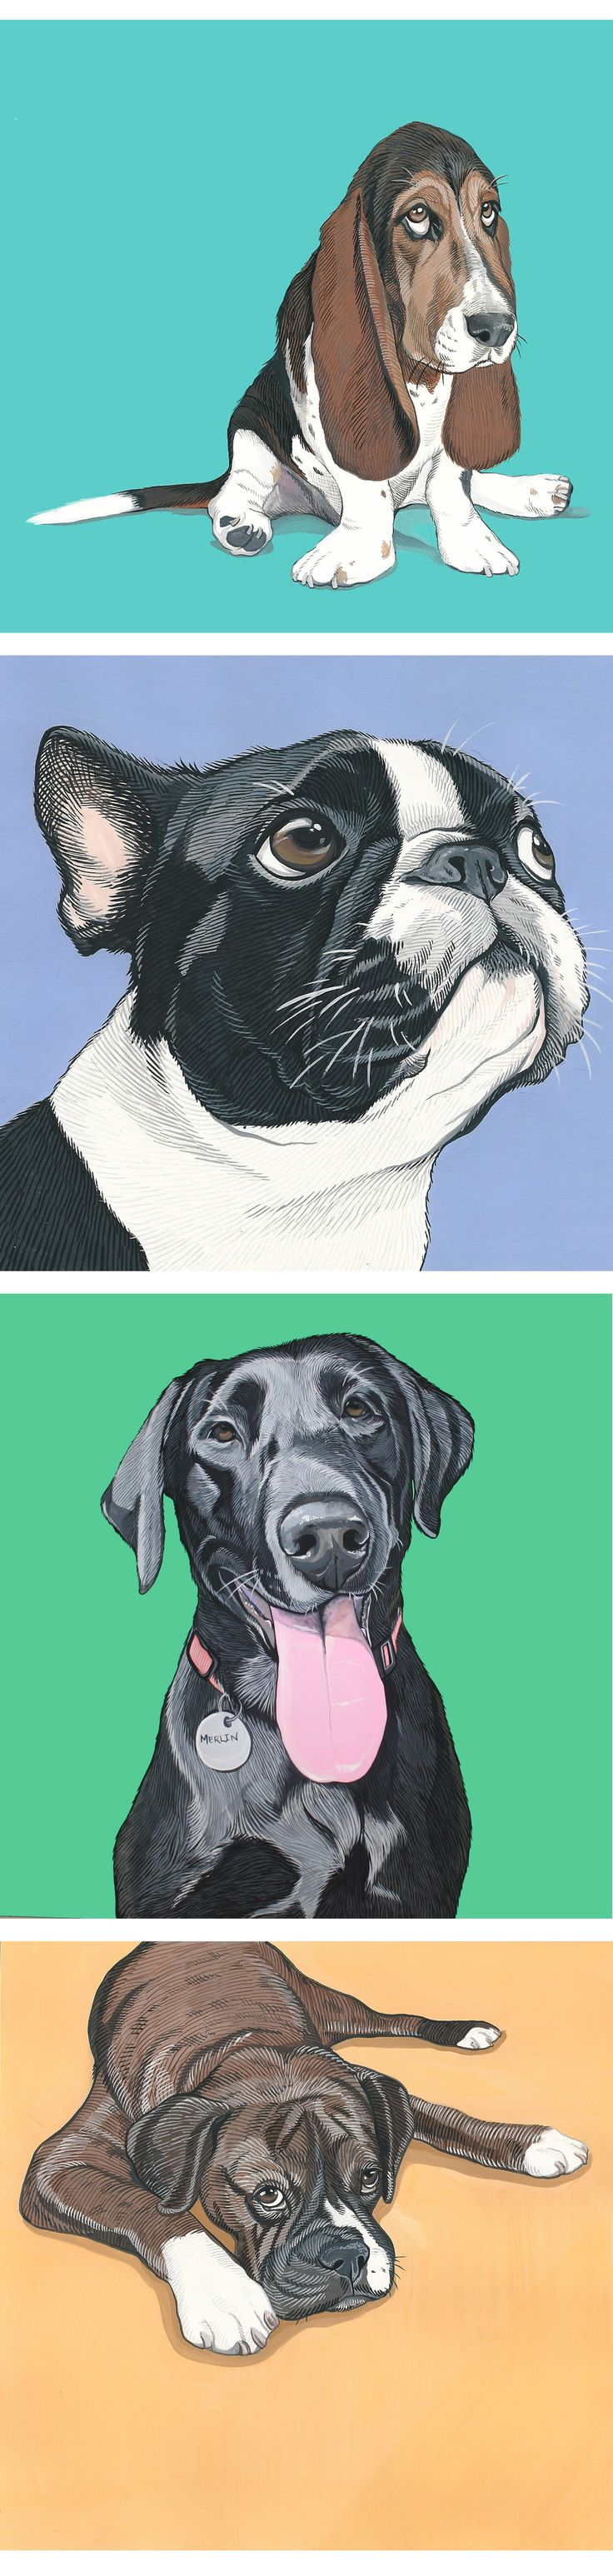 Whether it's a gift for the pet lover in your life or a piece for your living room, celebrate (Wo)Mans best friend by having a custom pet portrait made! Each piece is hand painted in gouache using your photos as a reference and finished with a bright  and colorful; background.  Visit www.artbymanda.com for more details- now taking orders for Christmas delivery.